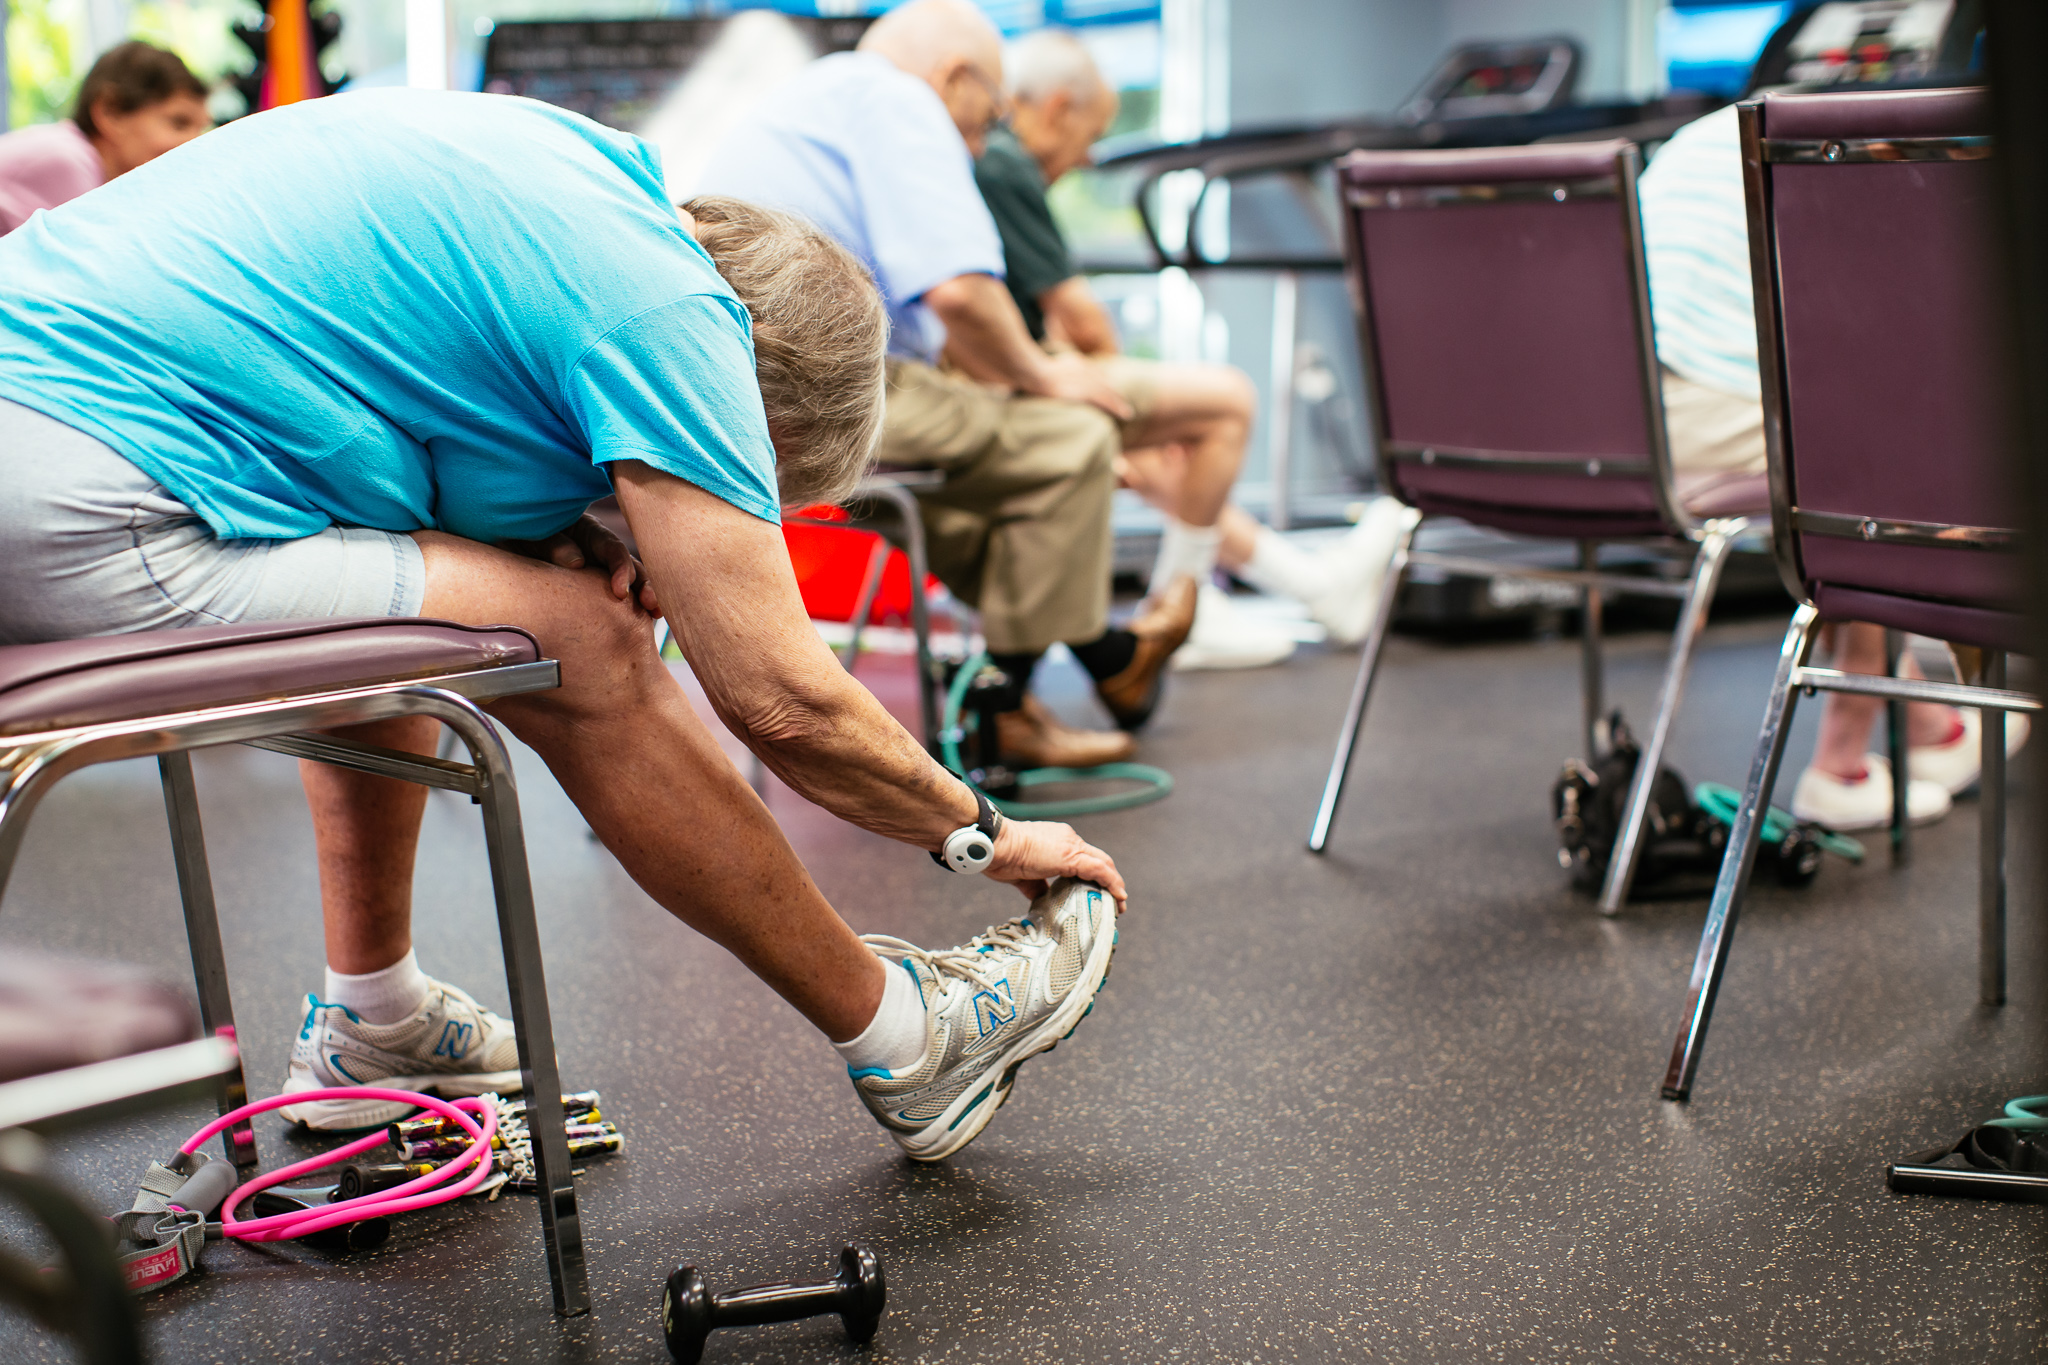 Staying Active: 5 Benefits of Senior Fitness Programs